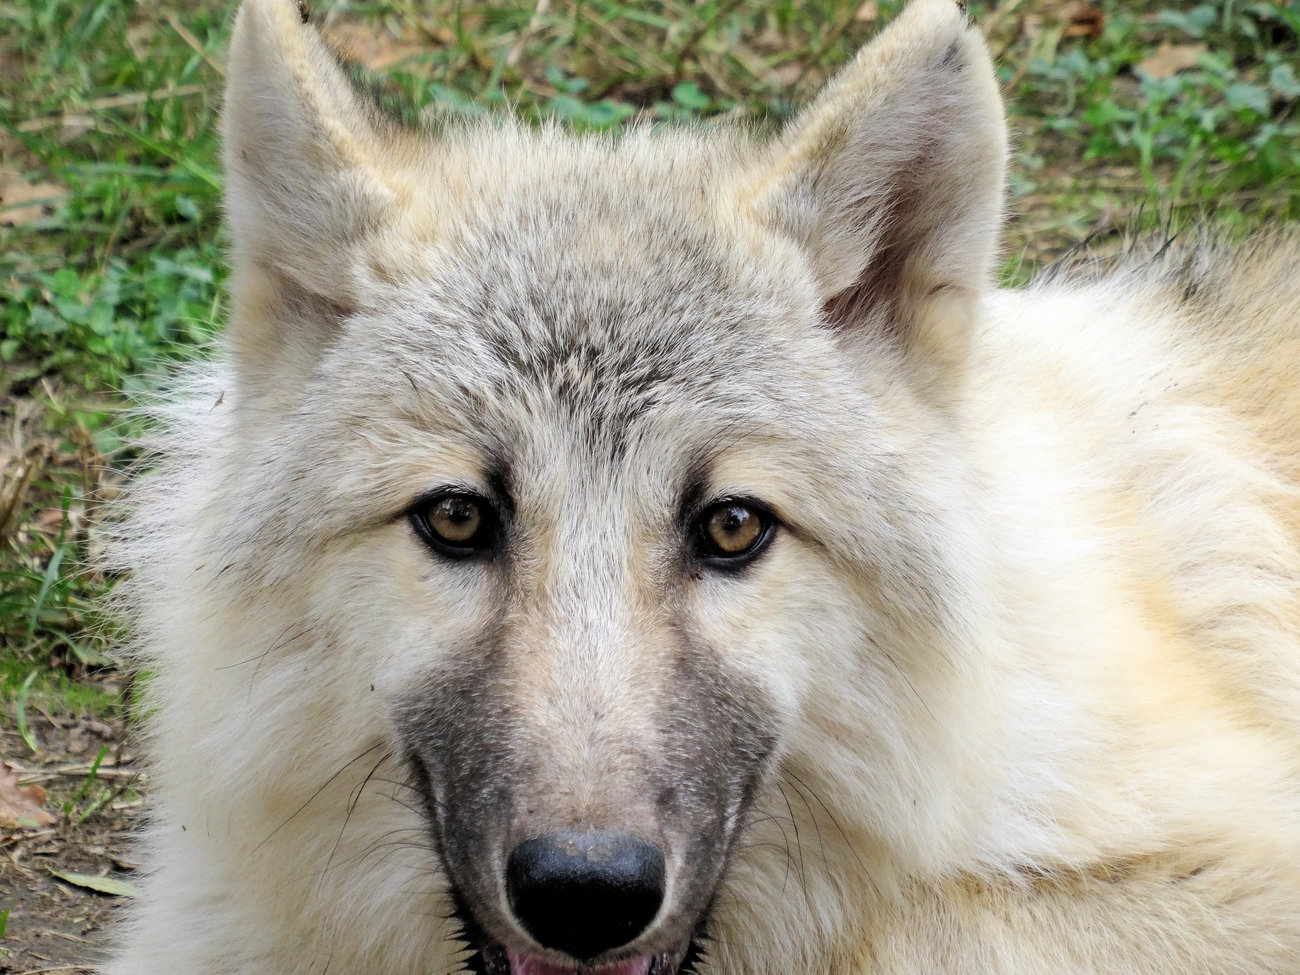 An Arctic wolf looks at you